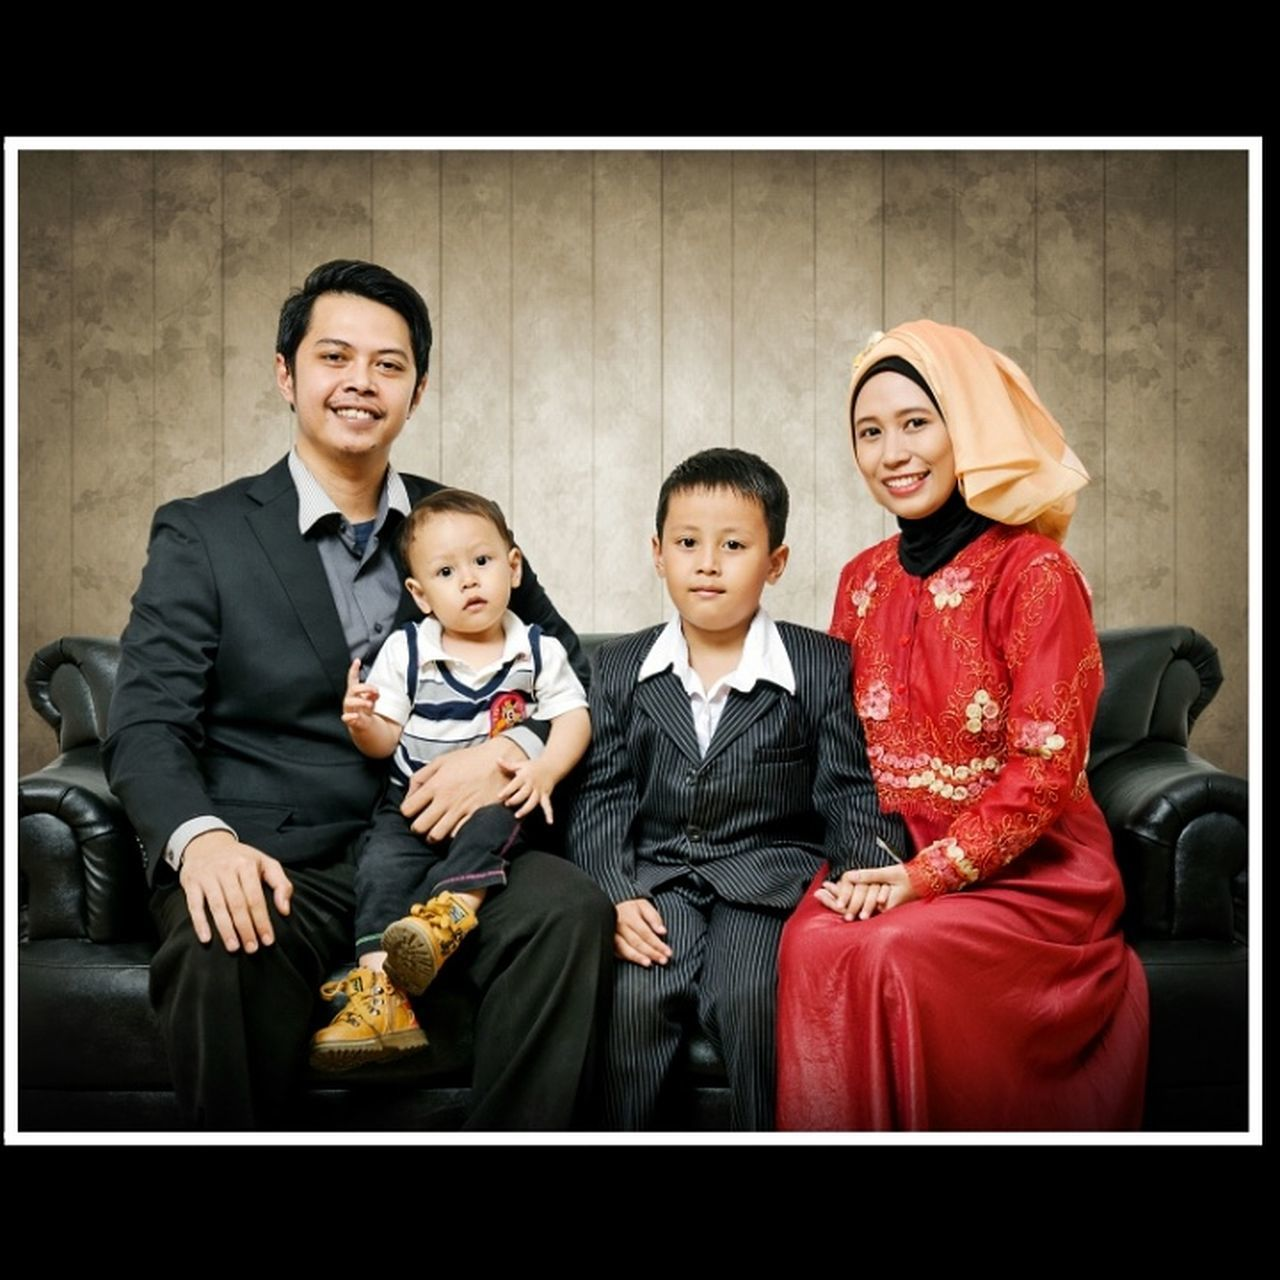 son, mother, looking at camera, father, portrait, daughter, men, togetherness, smiling, family, females, males, indoors, mature adult, women, mature women, boys, sitting, standing, group of people, happiness, well-dressed, adult, real people, child, people, young adult, day